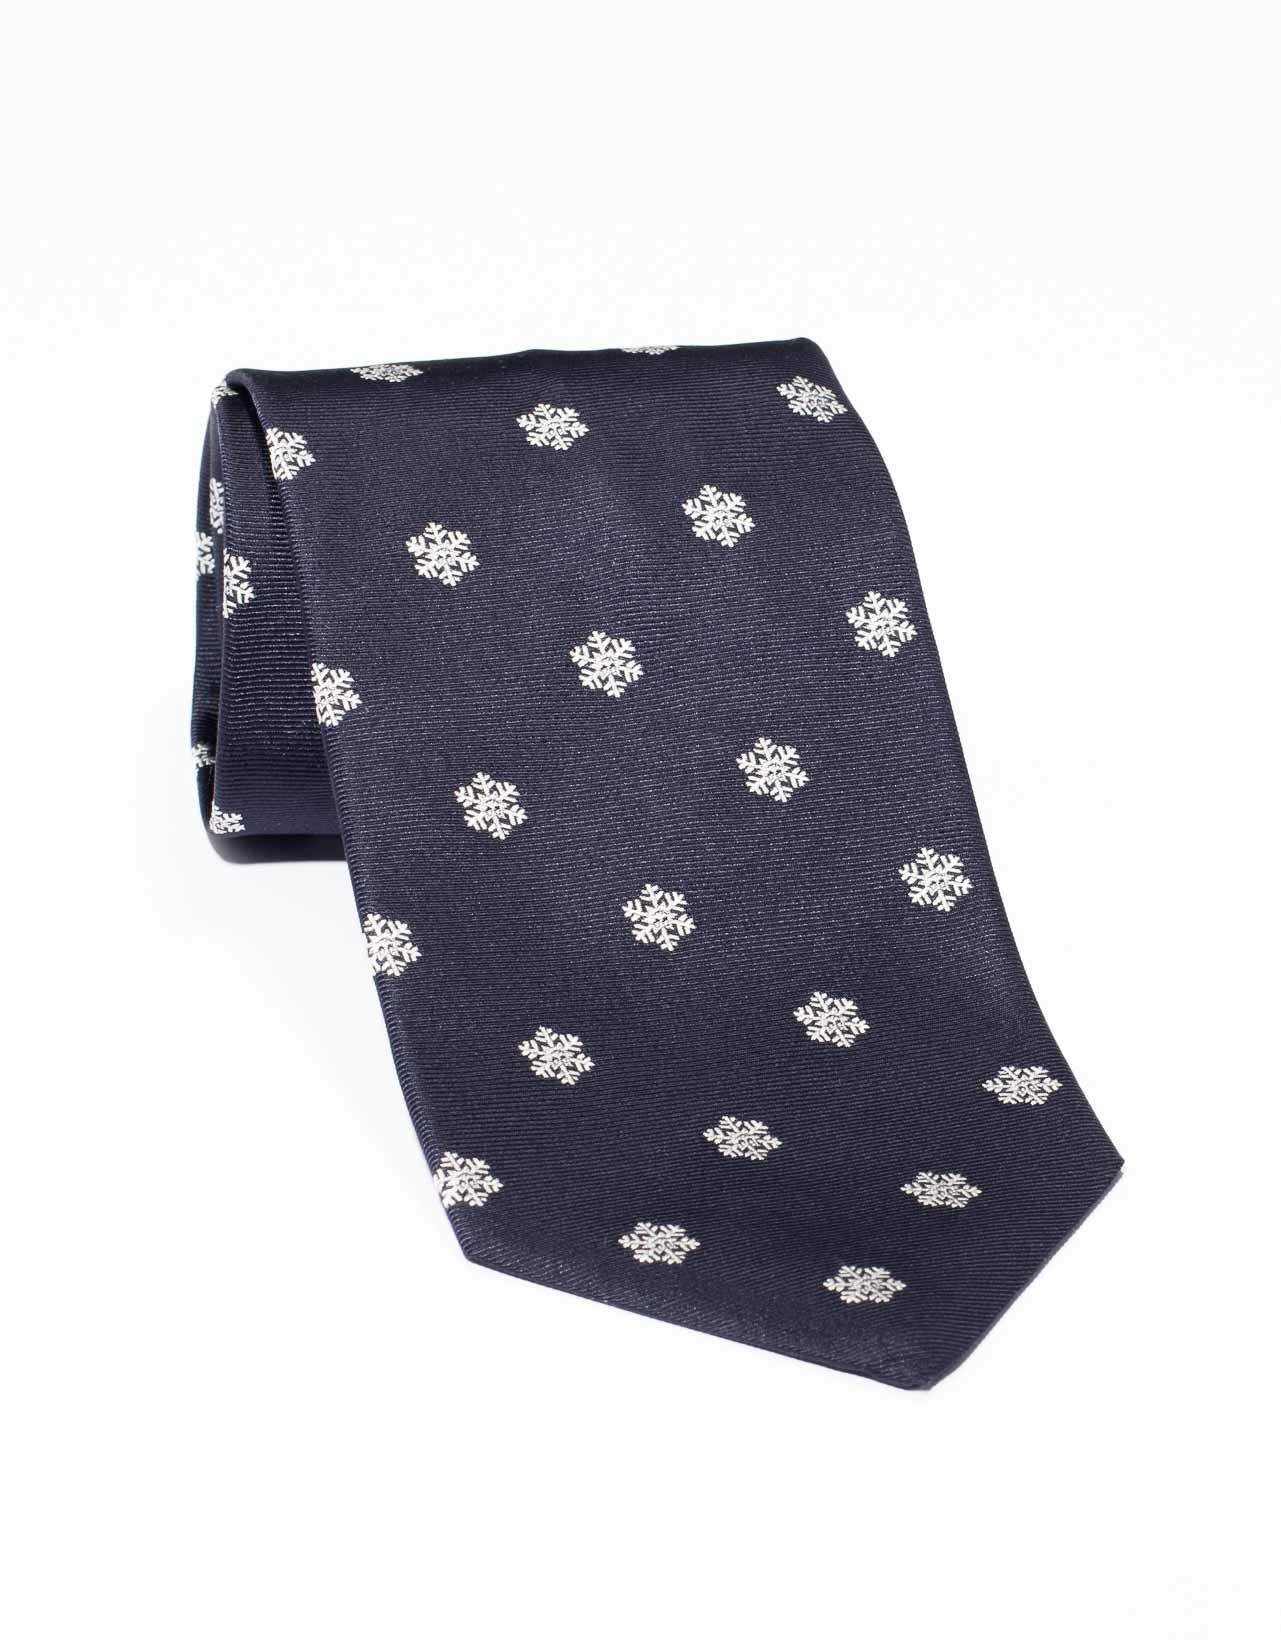 EMBLEMATIC SNOW FLAKE- NAVY